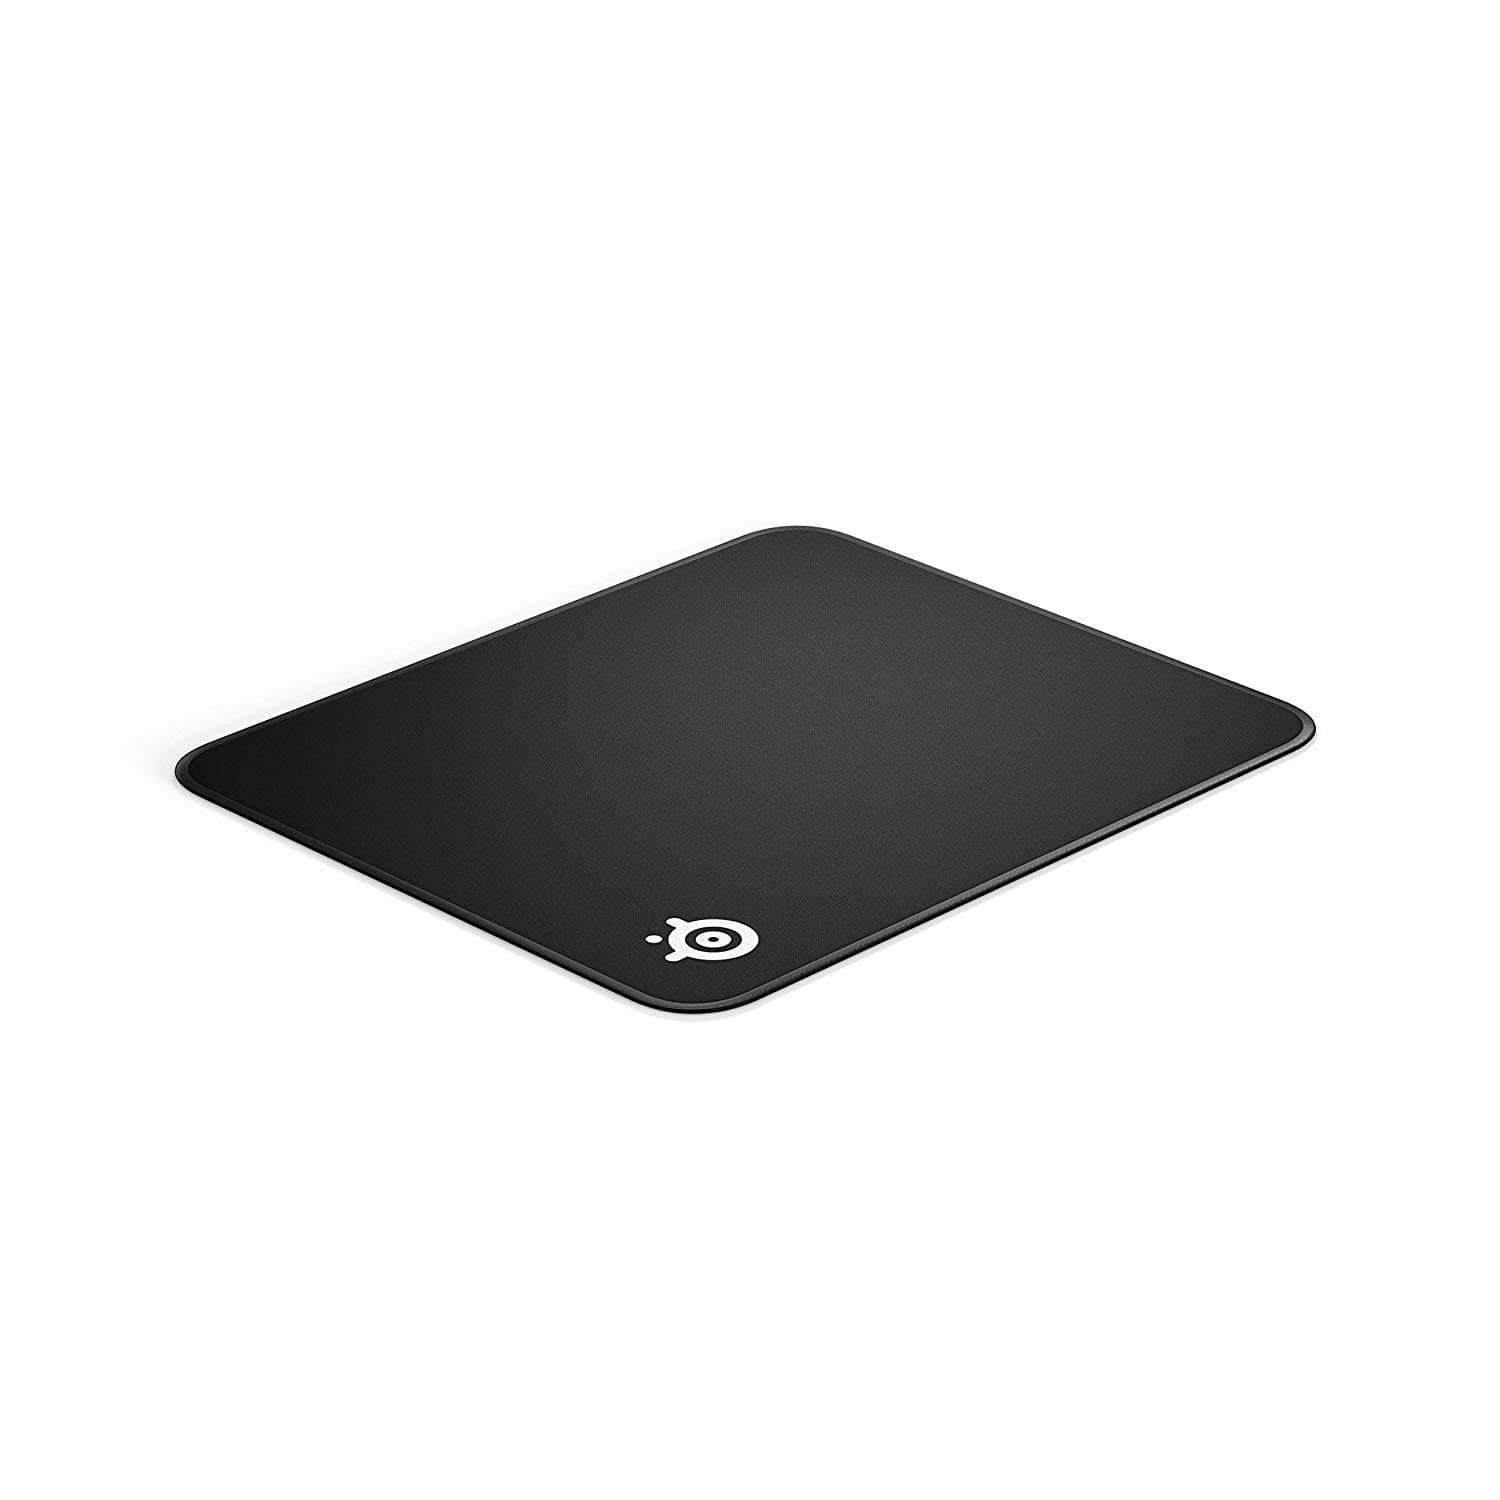 SteelSeries QcK Gaming Medium Stitched Edge Cloth Mouse Pad - $11.99